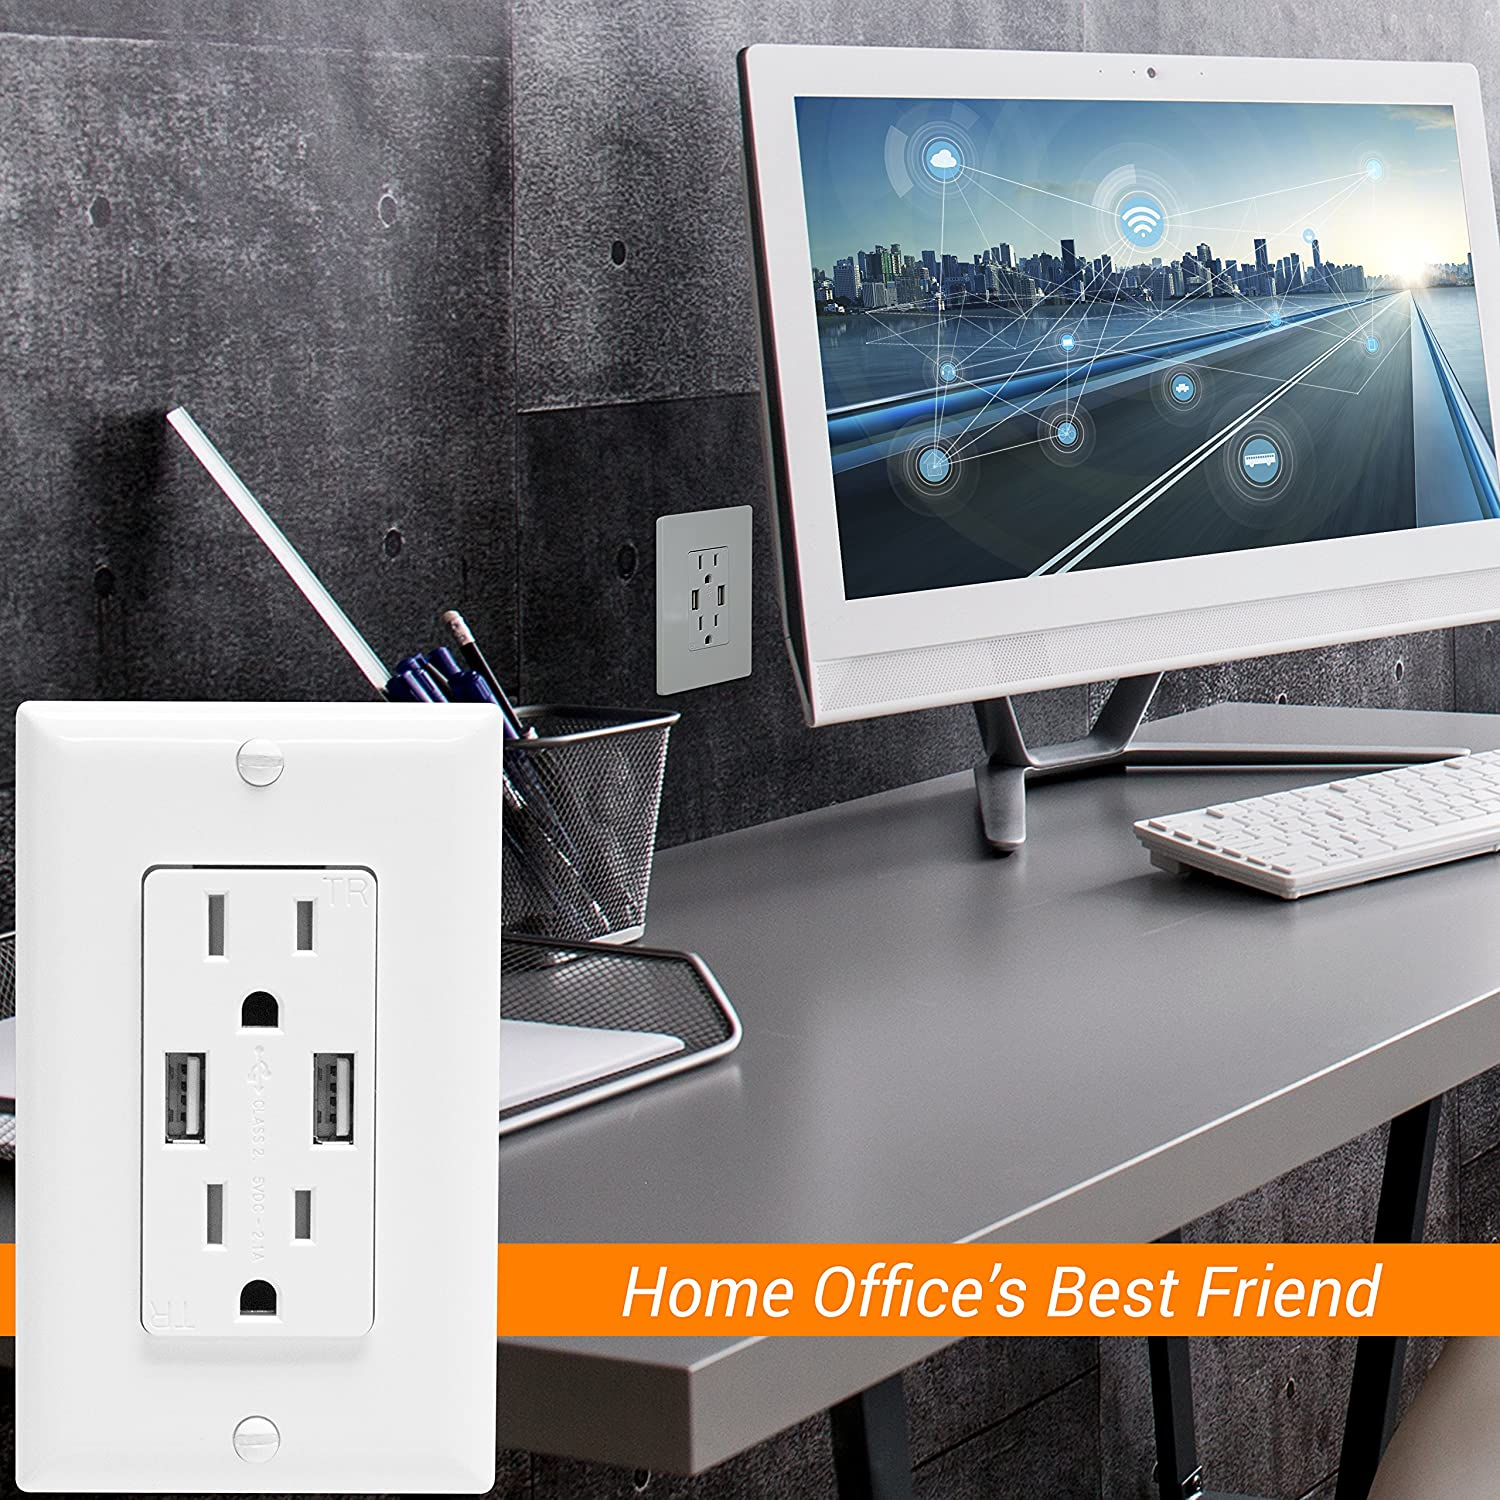 Top Greener Tu2152a W Dual Usb Outlet With Ports Charger Power 21a 15a Tamper Resistant Way Dimmer Switch Besides 3 Wiring Diagram Duplex